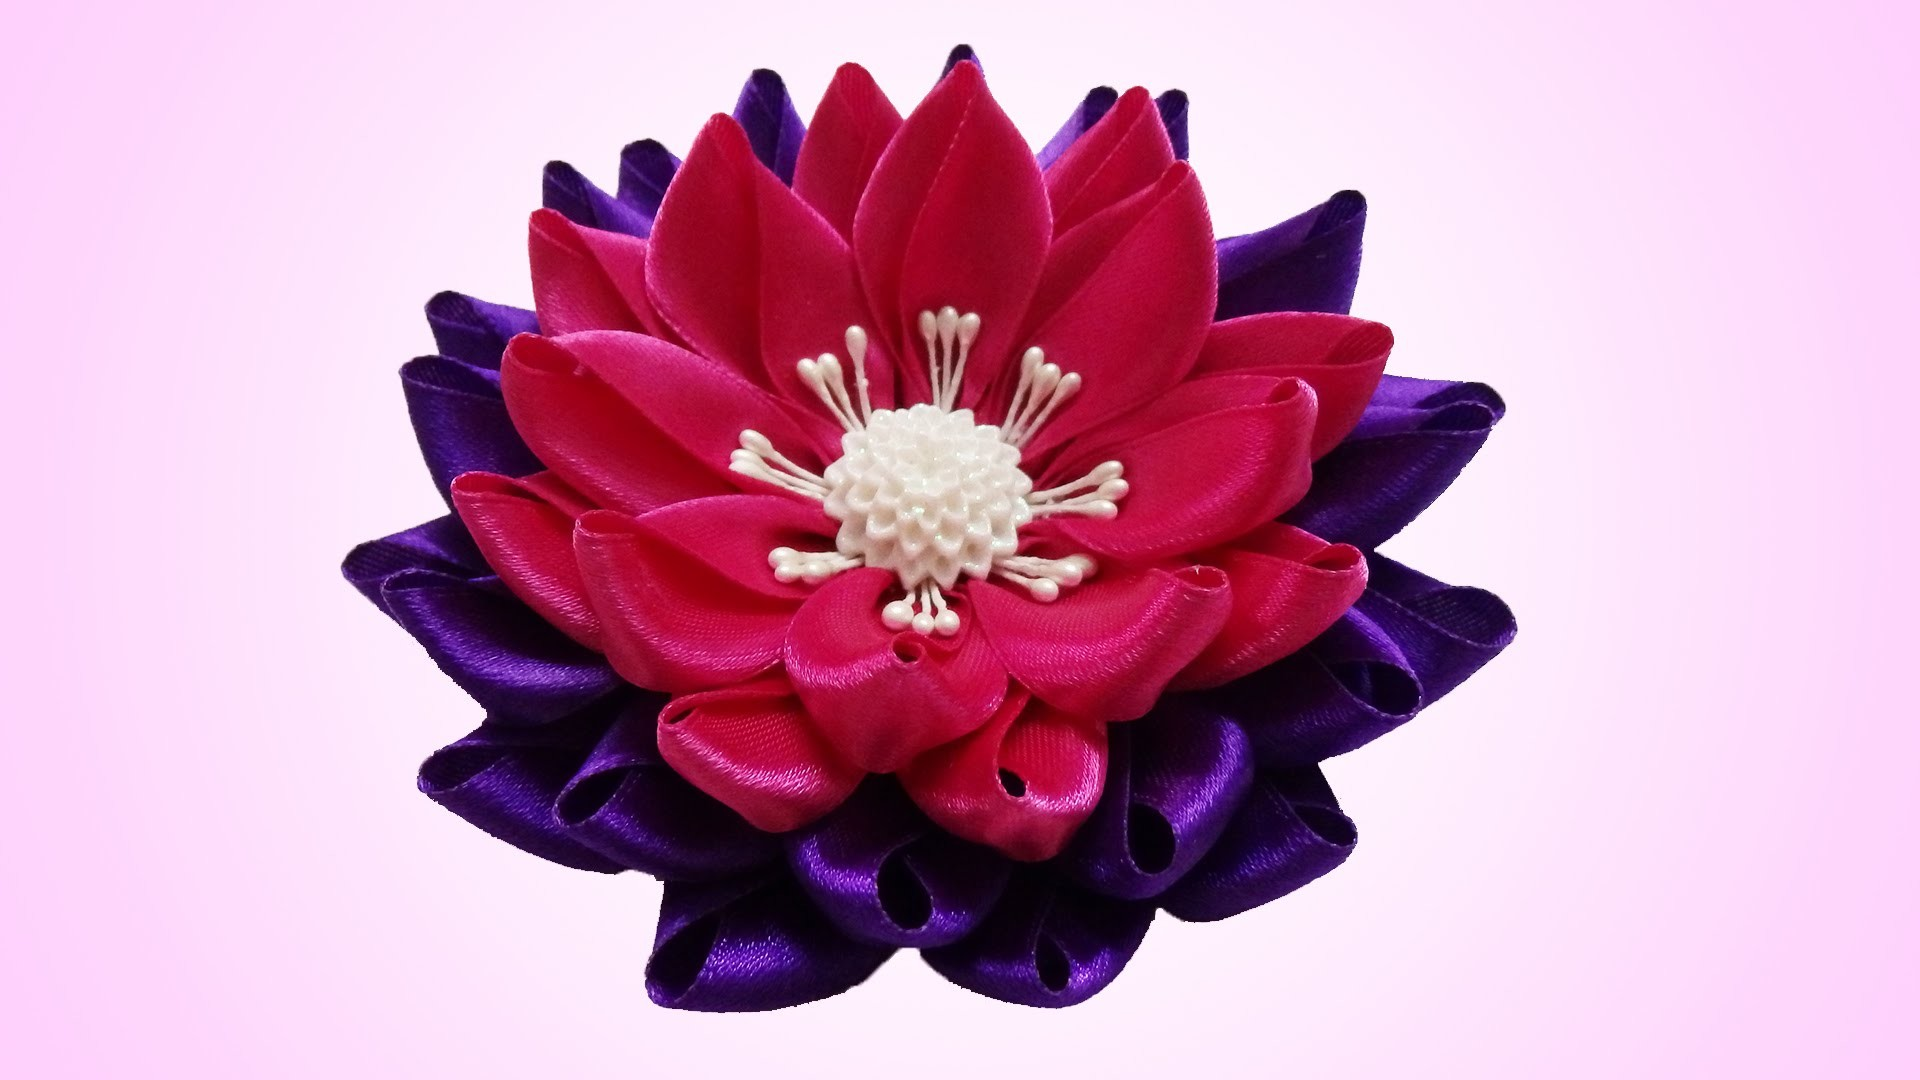 DIY kanzashi flower, Water lily kanzashi flower tutorial